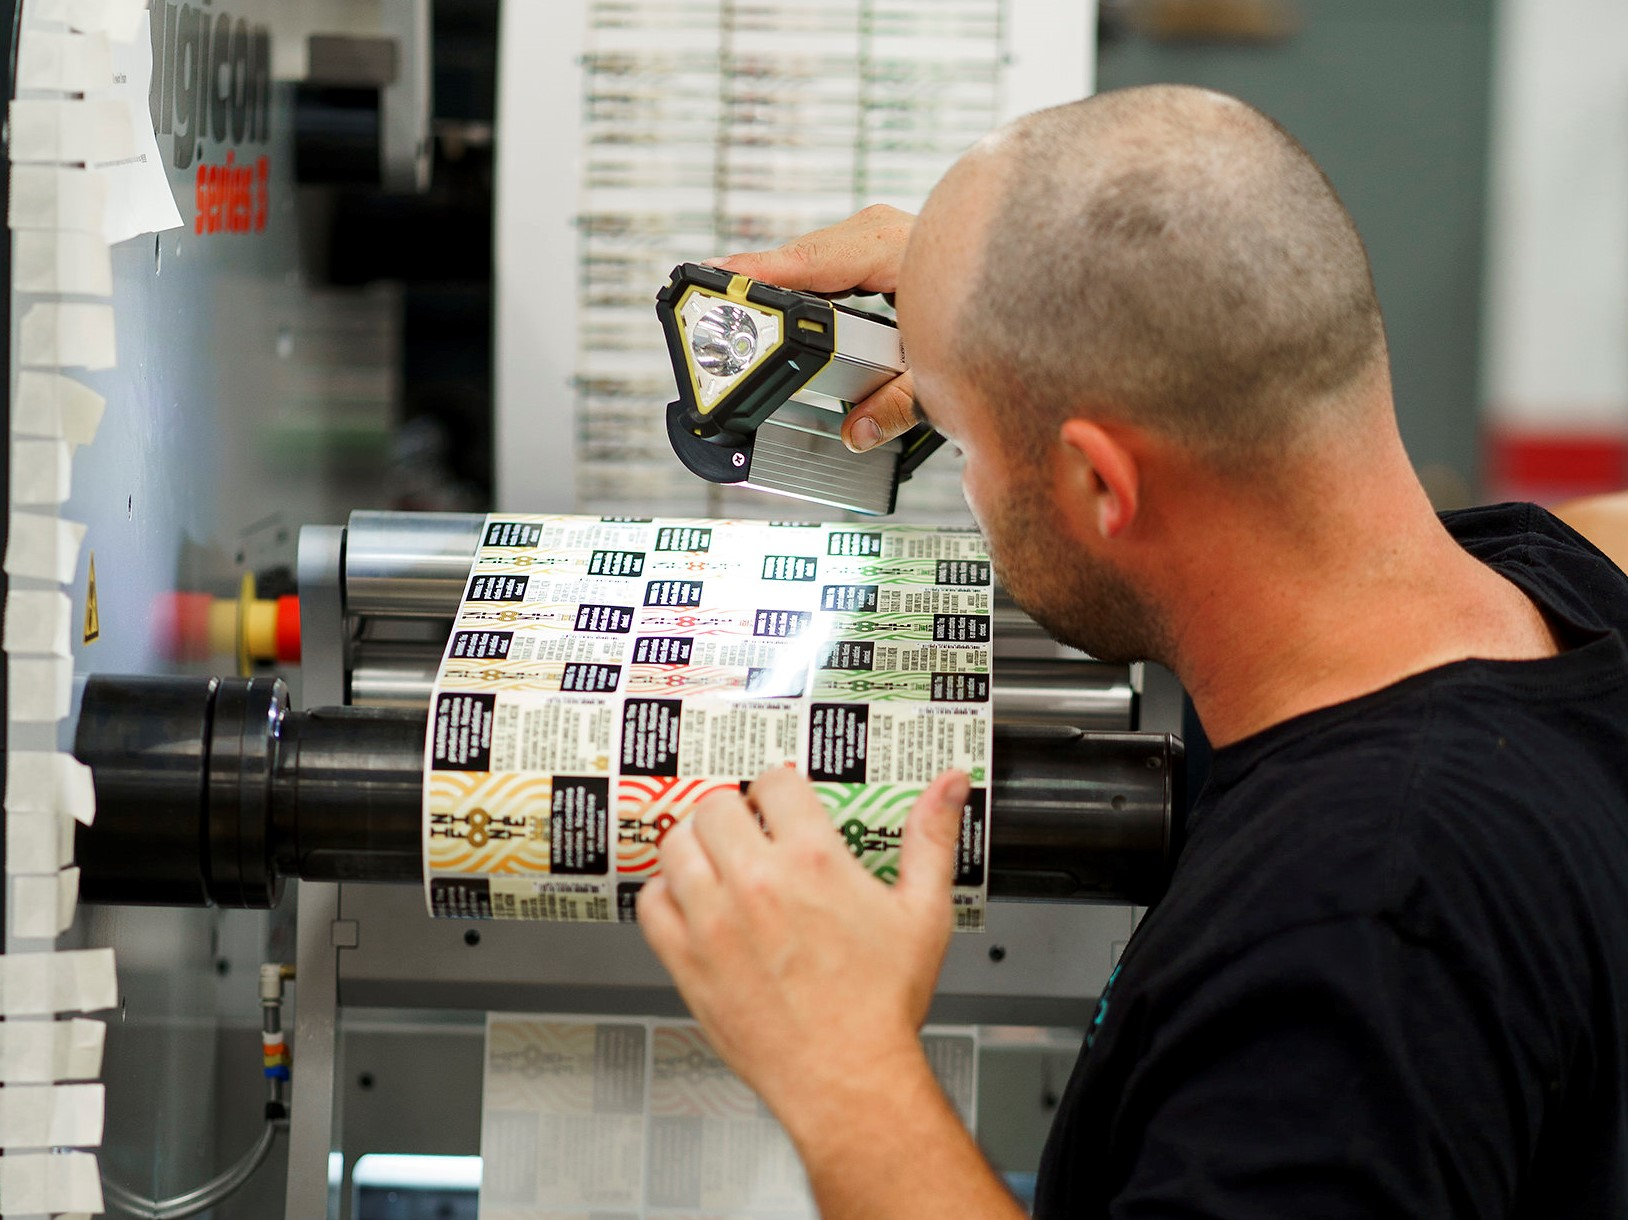 A man examining printed labels for defects.